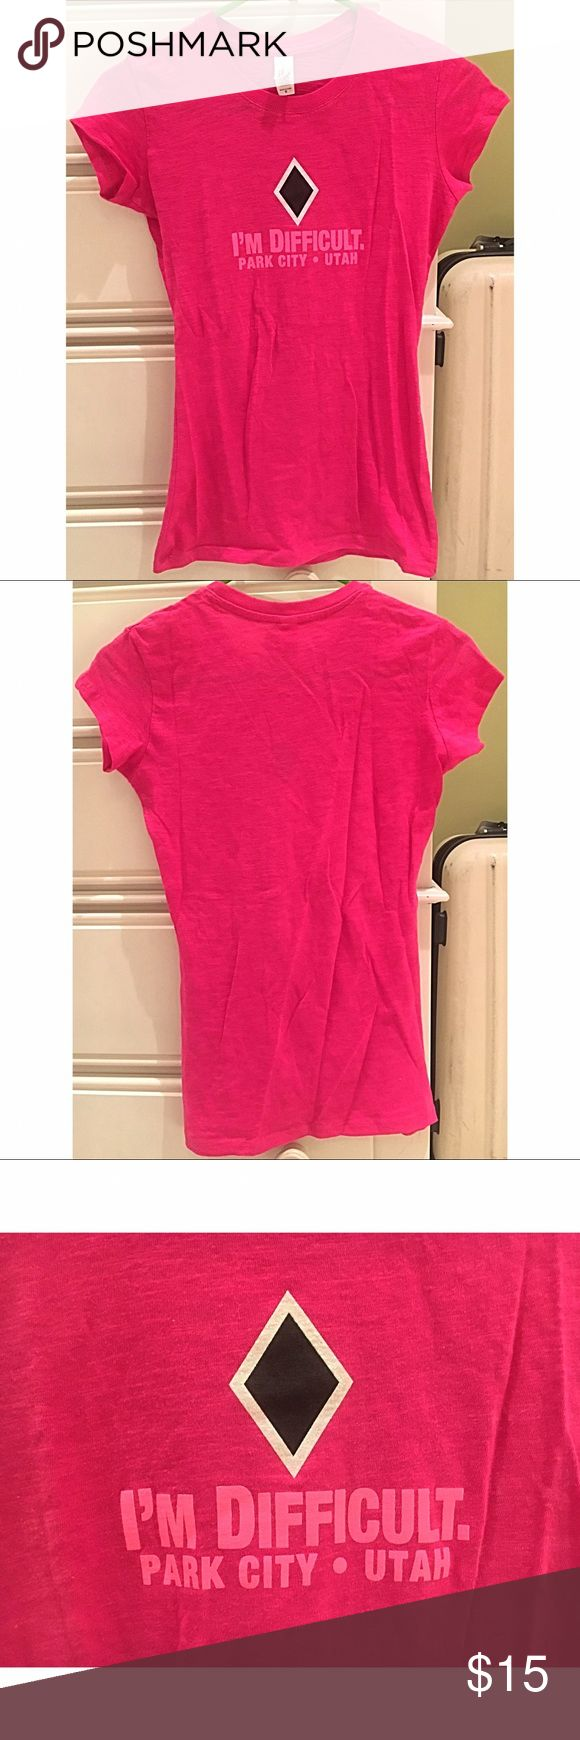 """NWOT Pink Park City T-Shirt This shirt is size Medium and is the perfect souvenir tee. It is New Without Tags and has never been worn. It is in new condition and has no rips or stains. The shirt size is more of a Junior Medium because it fits a smaller than an Adult Medium. It says """"I'm Difficult Park City • Utah"""" and it has a black diamond with a white outline on the front. Pima Apparel Tops Tees - Short Sleeve"""